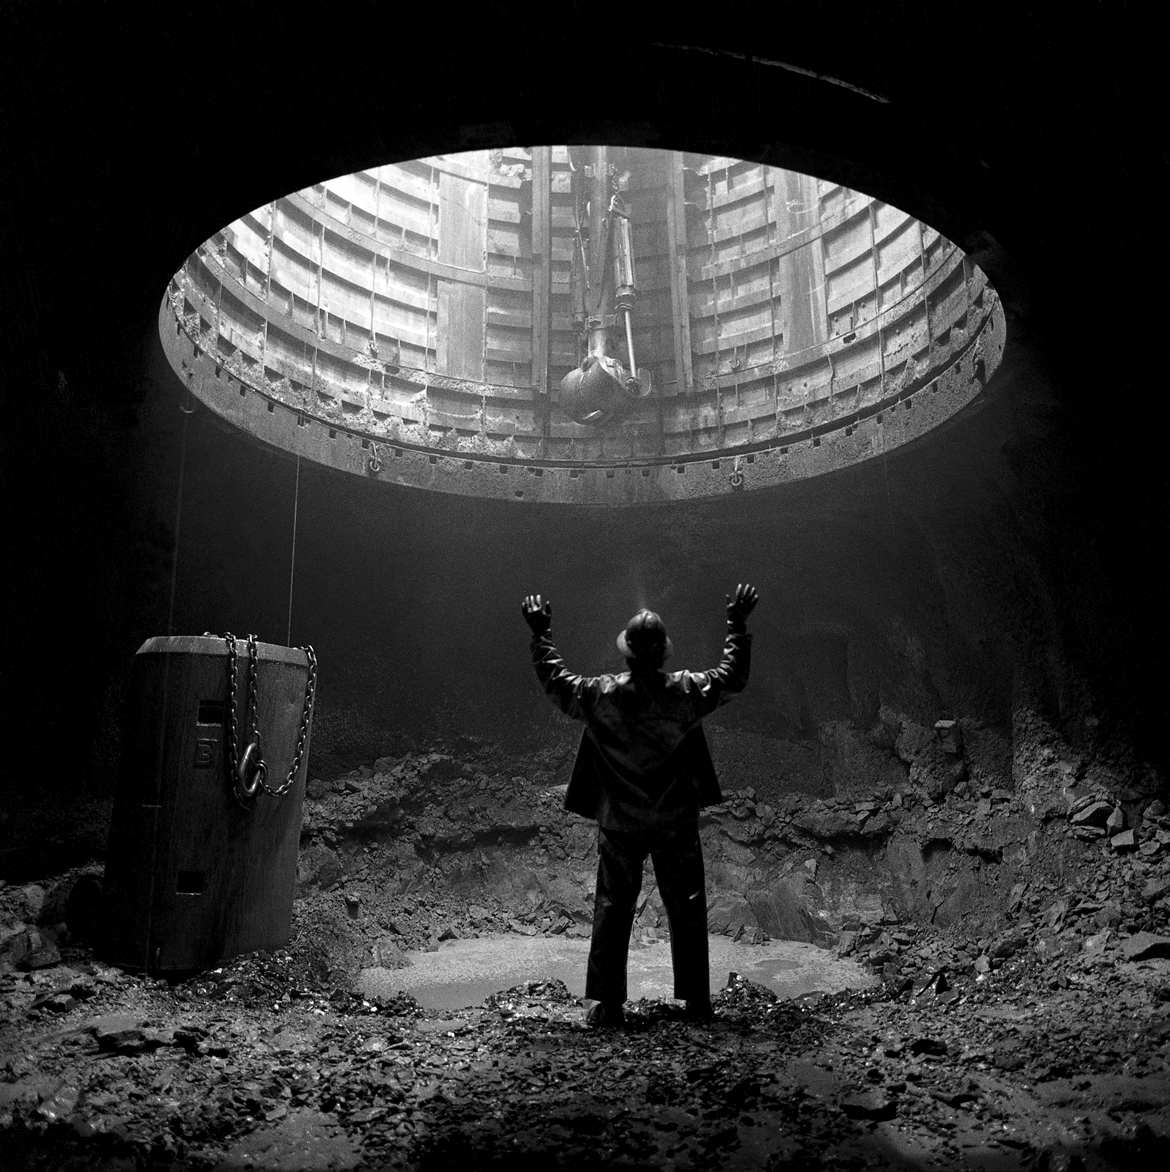 Shaft miner 2,500 feet undergound, Quebec, 1994. Photograph by Louie Palu. © Louie Palu/Courtesy of the artist and George Eastman House.